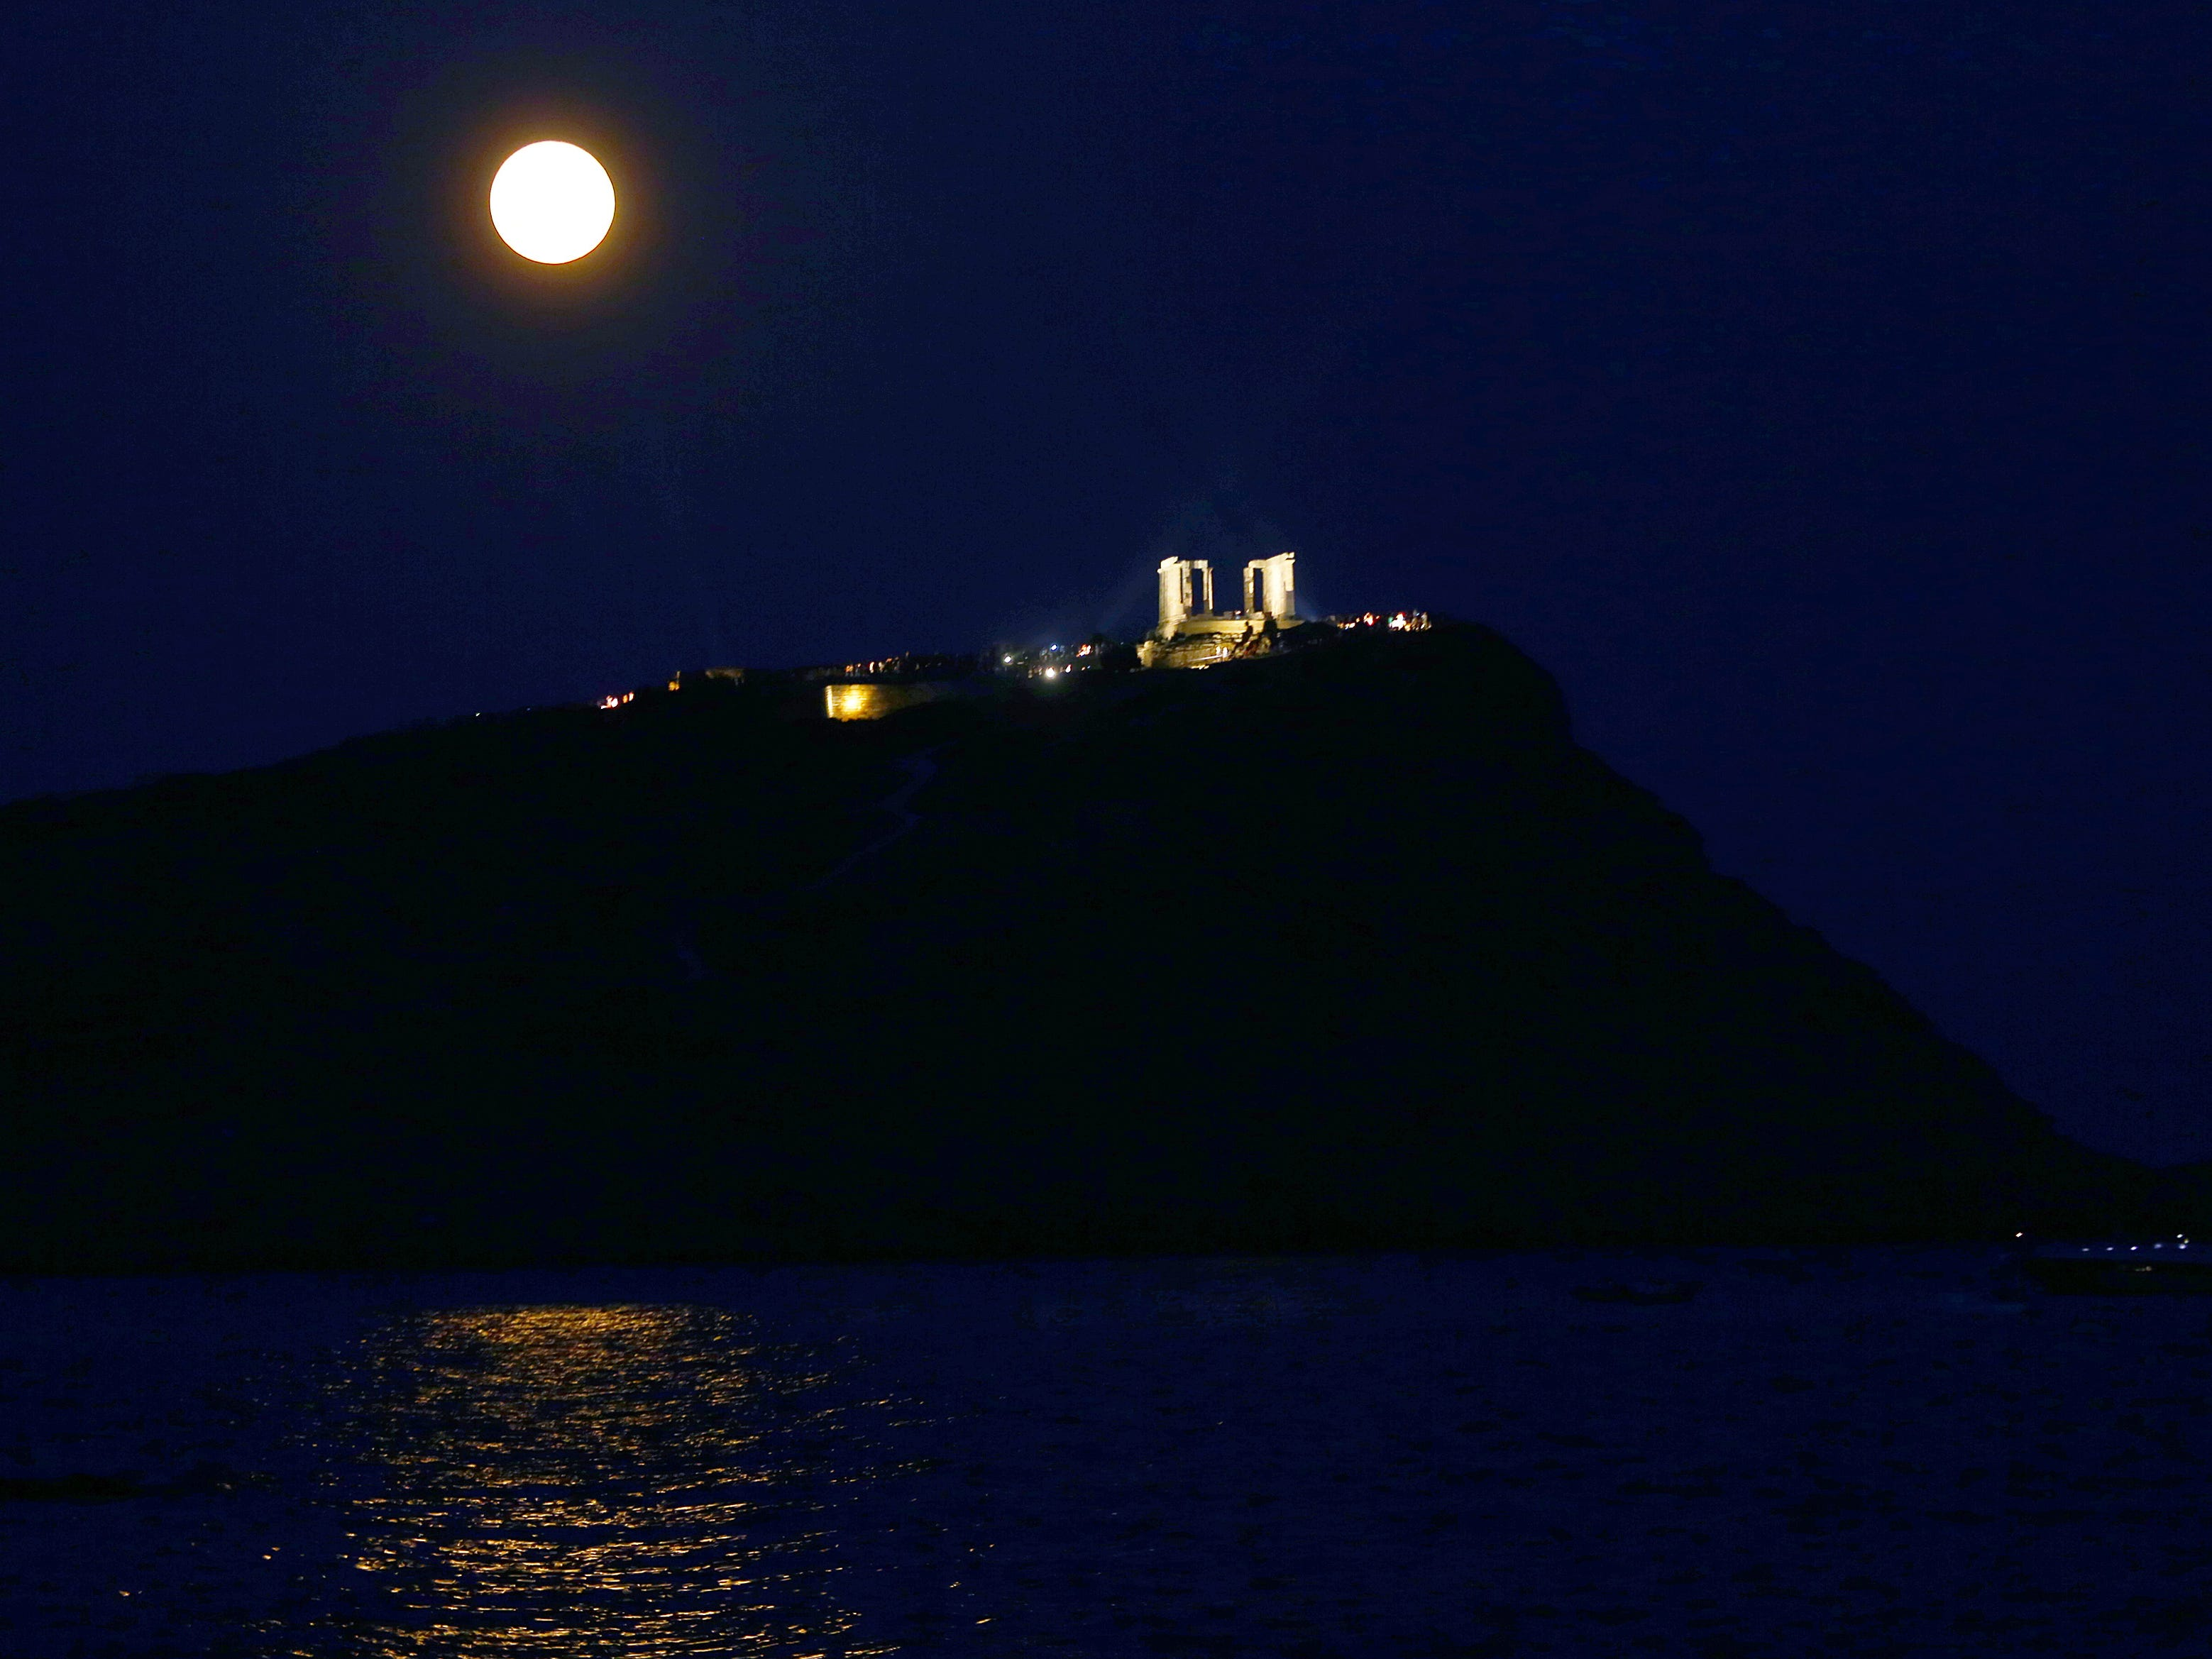 The full moon rises over the ancient temple of Poseidon, on Cape Sounio, Greece, Aug. 26, 2018.